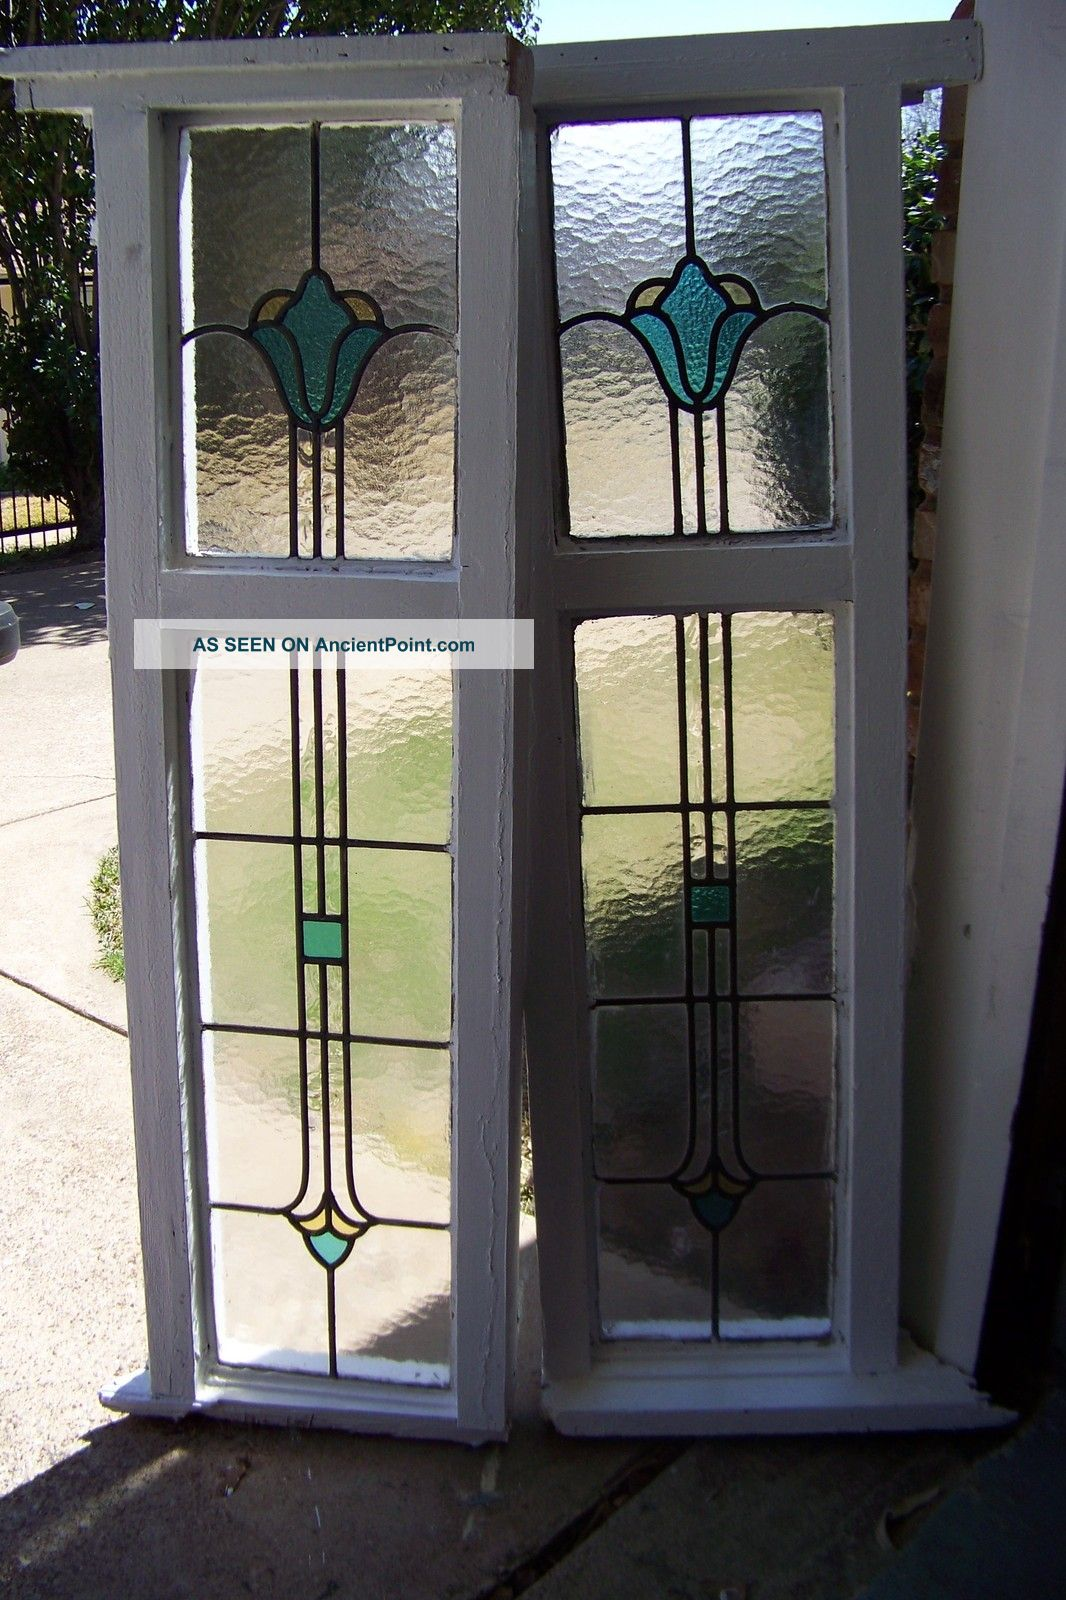 double pane window glass replacement cost glass door window glass replacement double pane cost decorating ideas